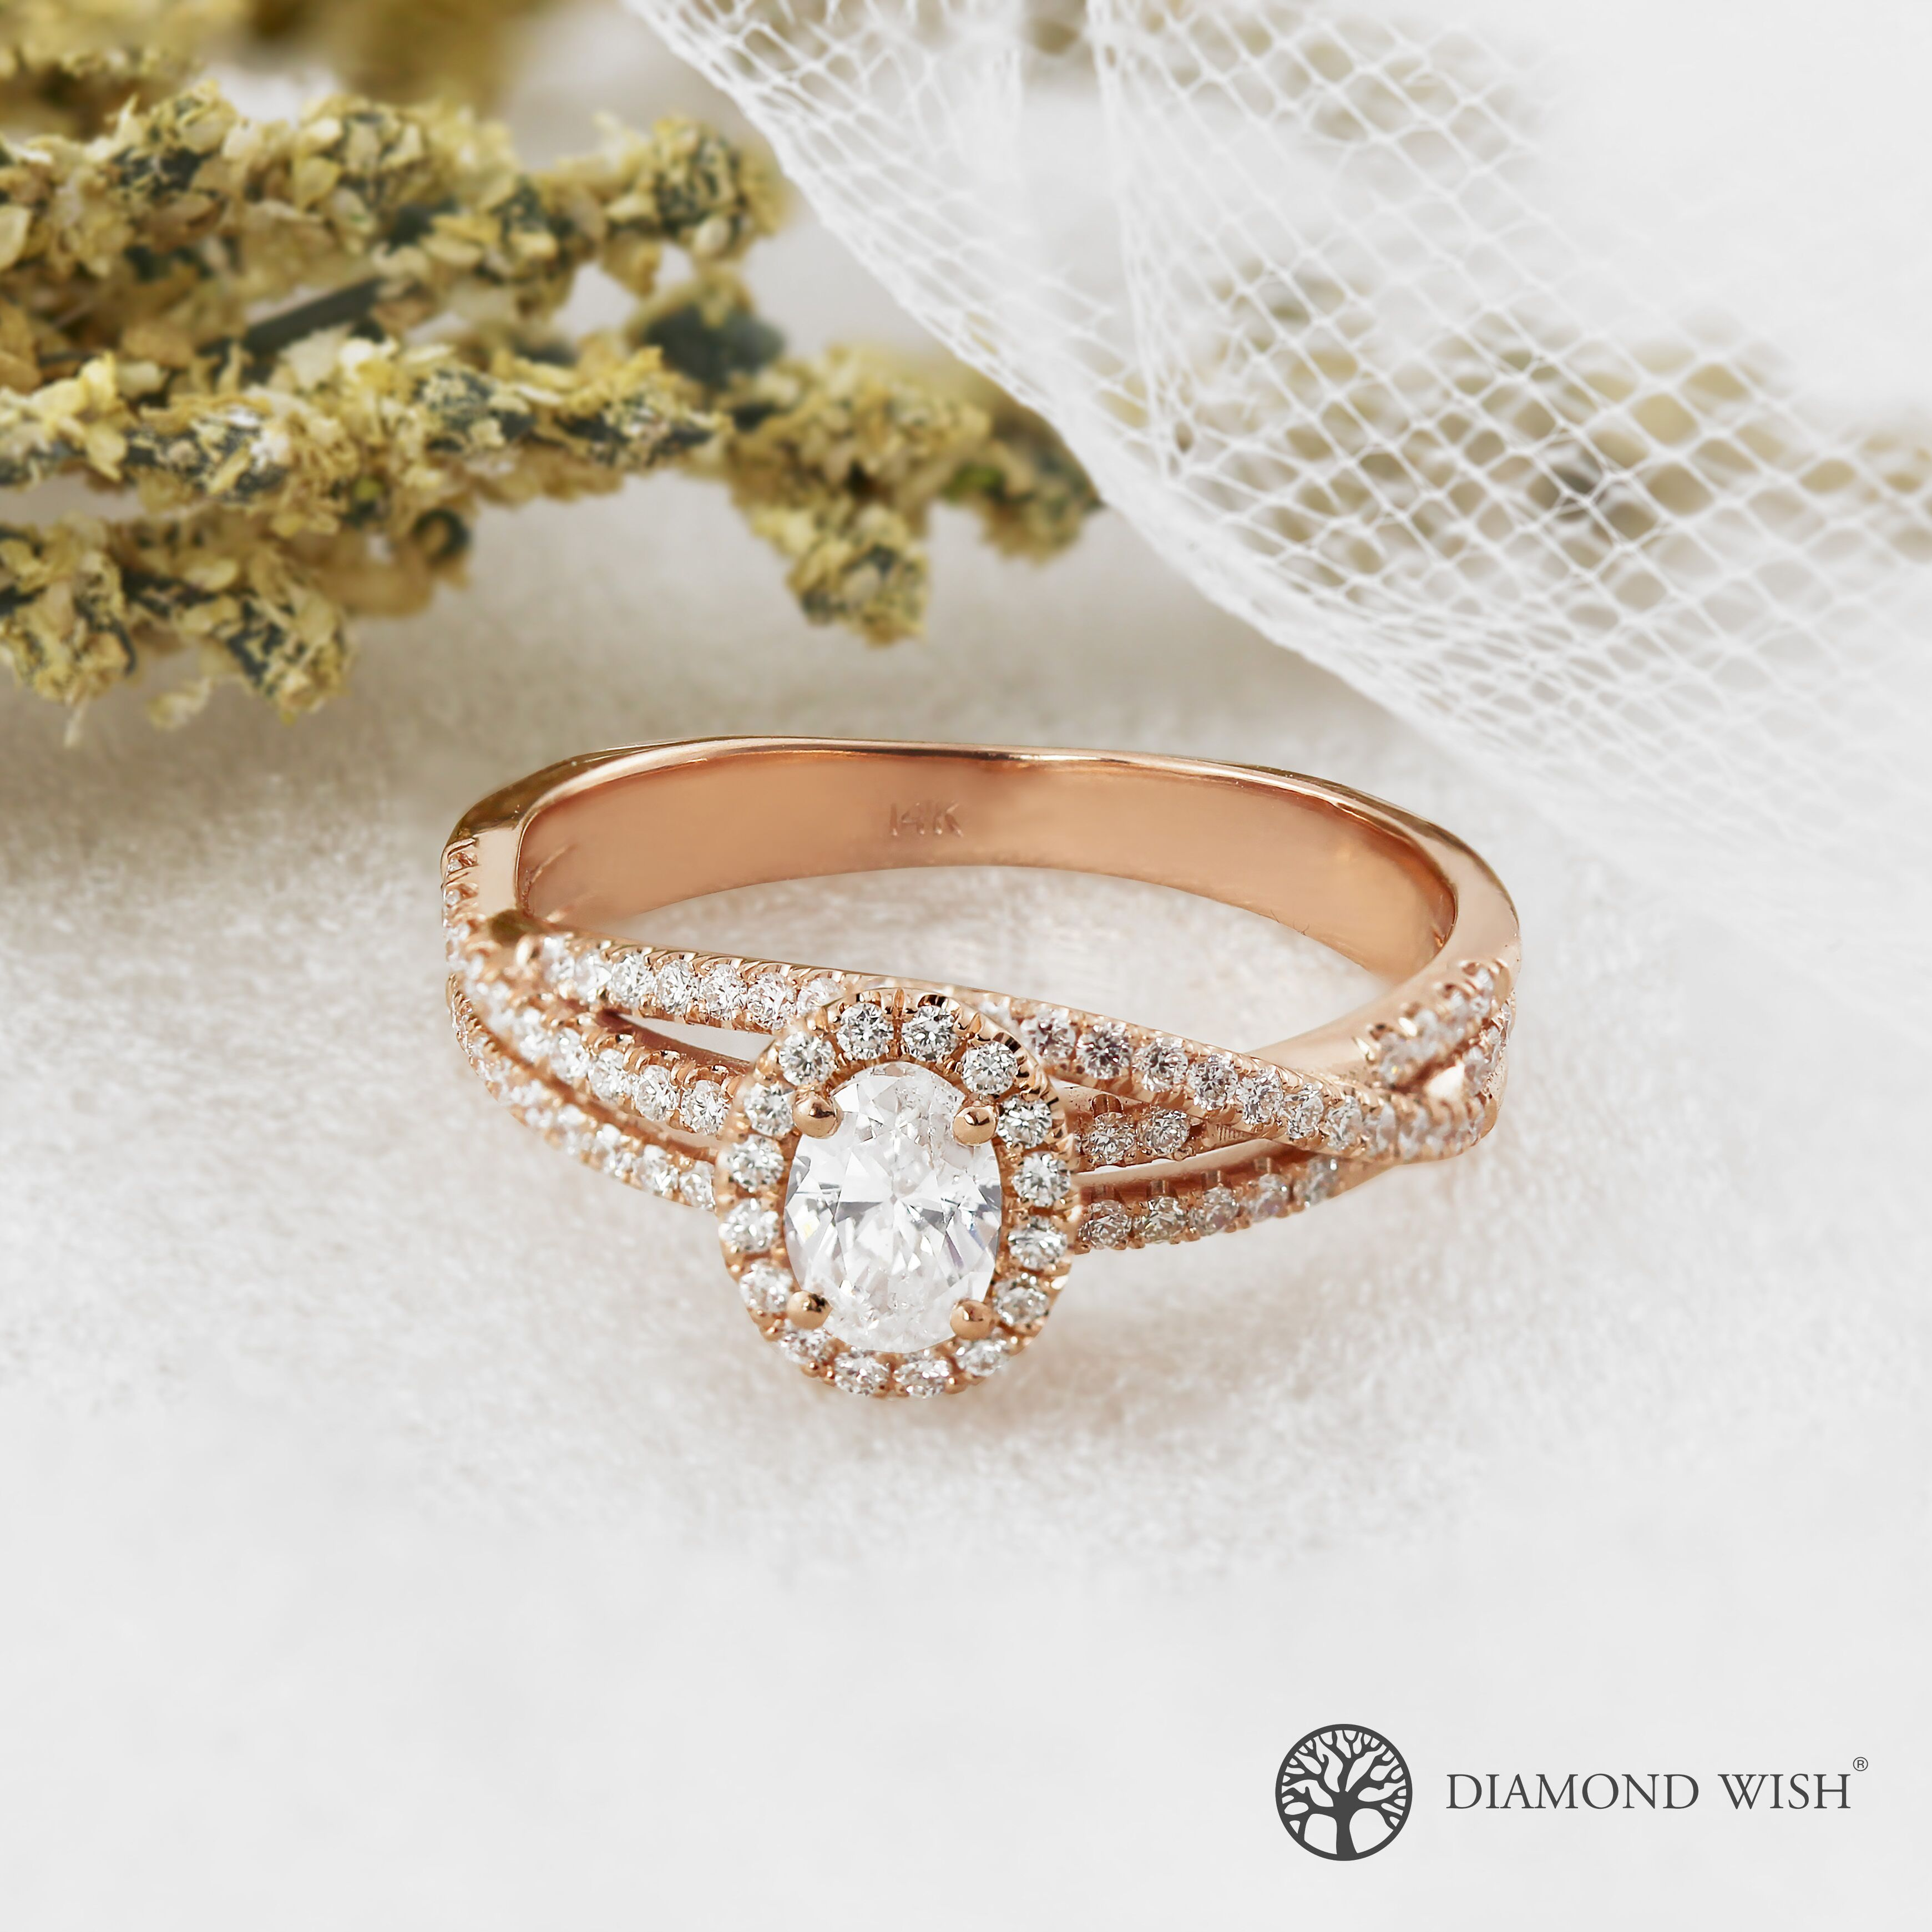 Modern Engagement Ring Styles: The Bypass Engagement Ring